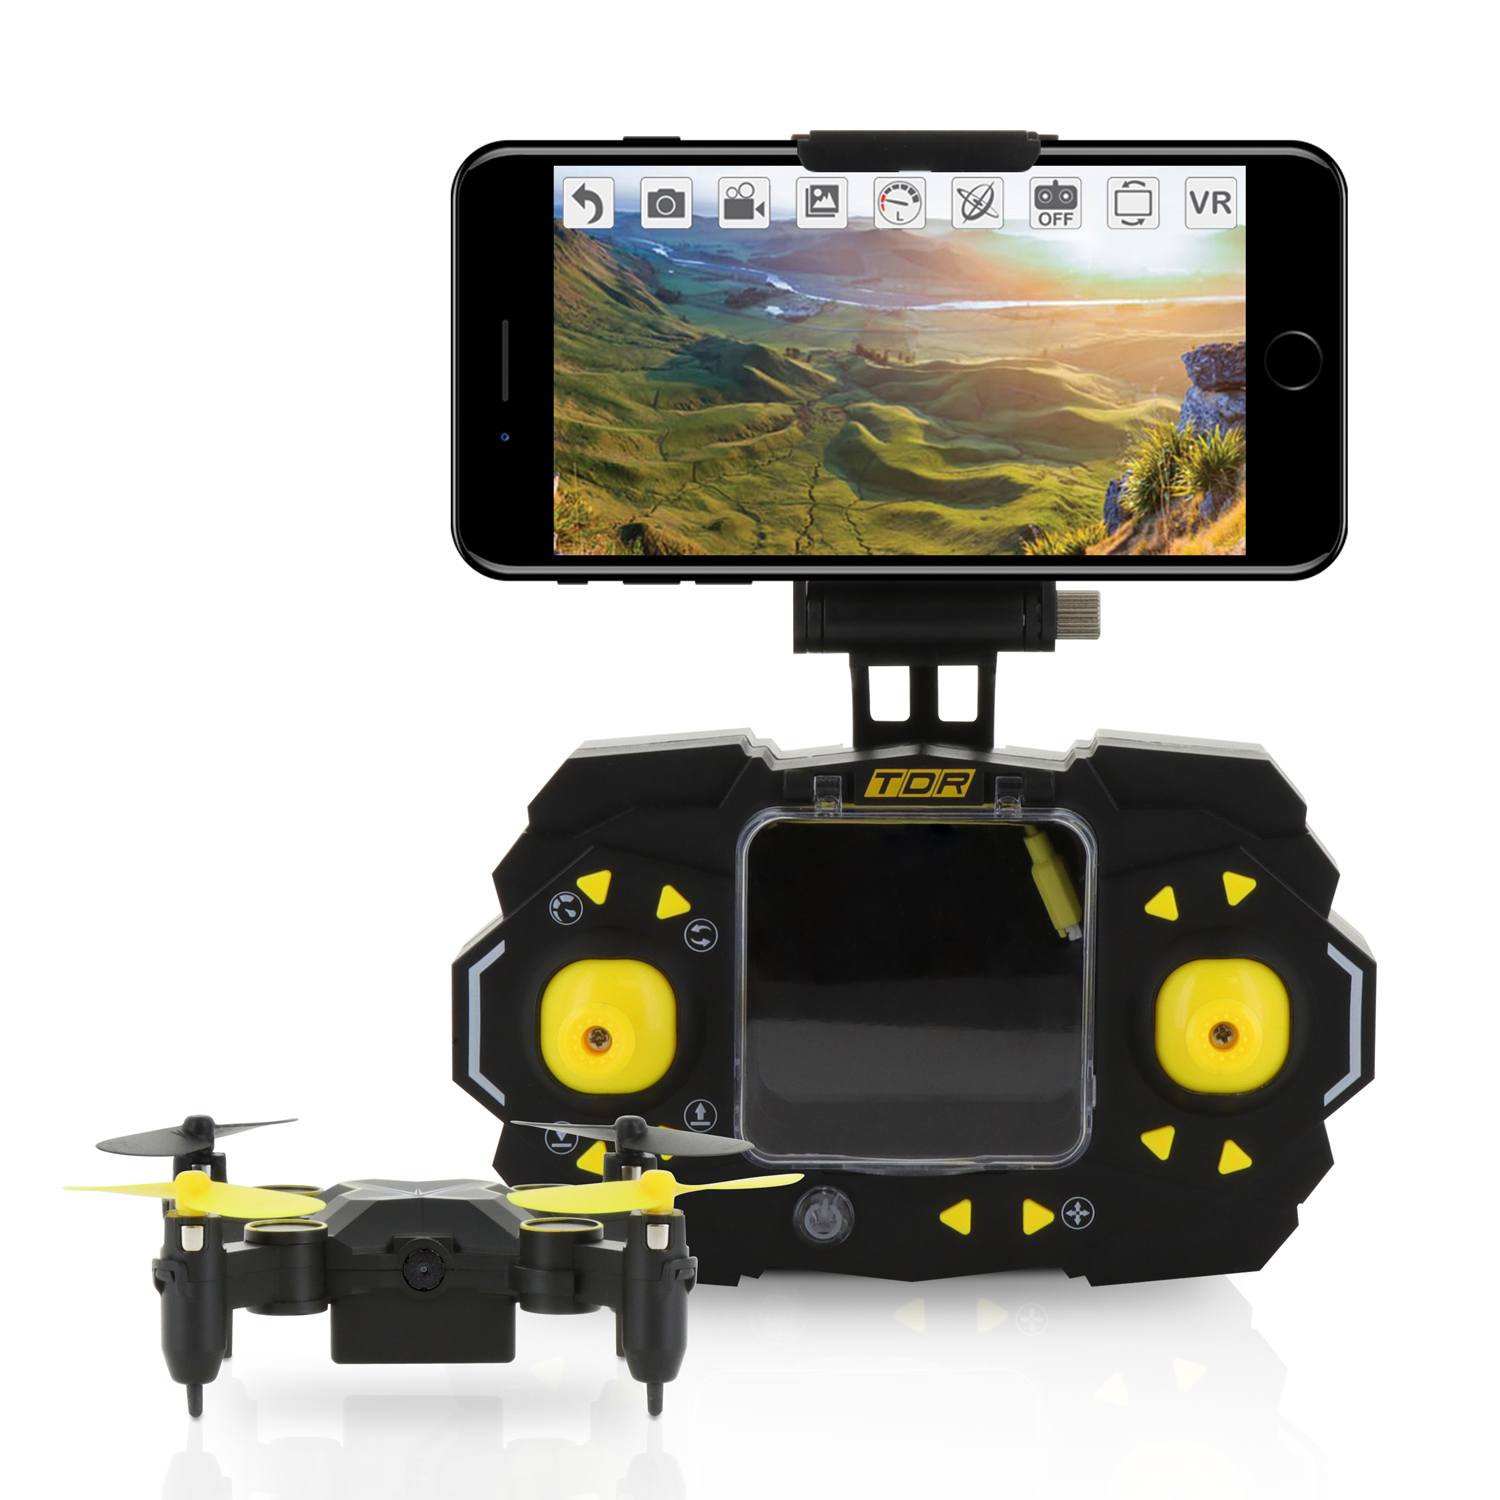 TDR Sky Beetle Stunt RC Camera FPV Quadcopter Drone w/ Docking Transmitter Auto Hovering WiFi App Control